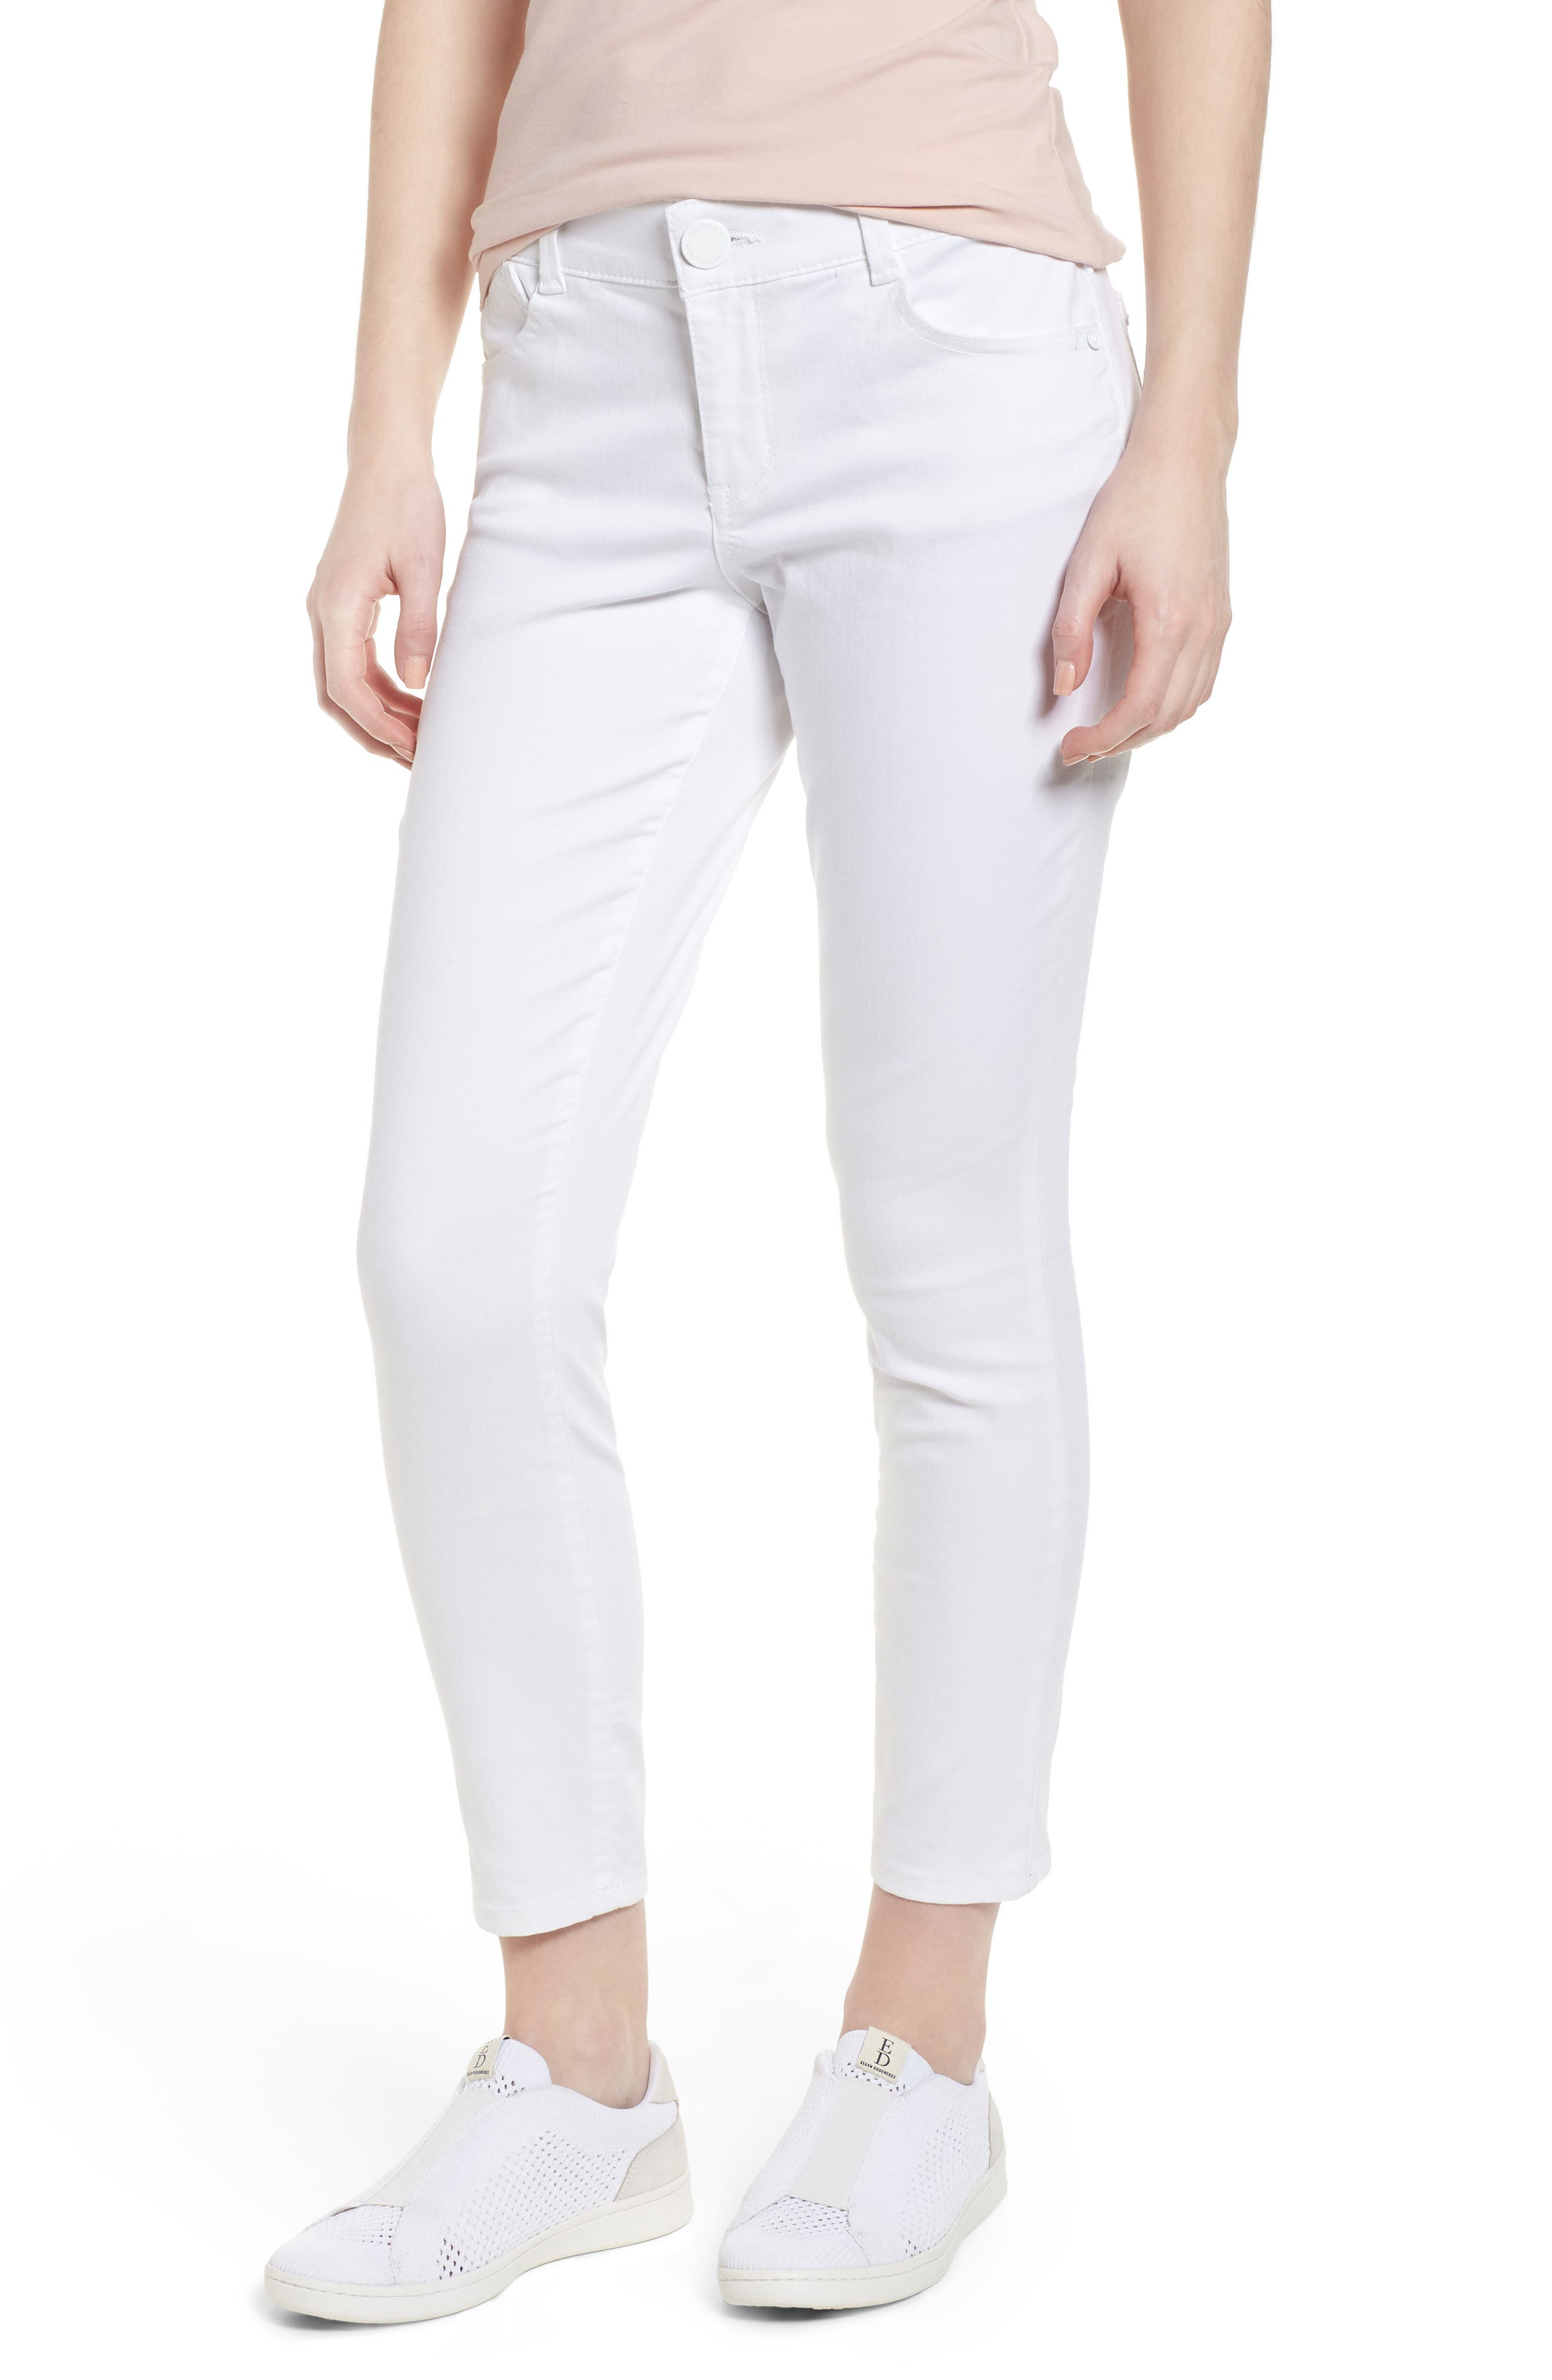 Ab-solution Ankle Skimmer Jeans,                         Main,                         color,